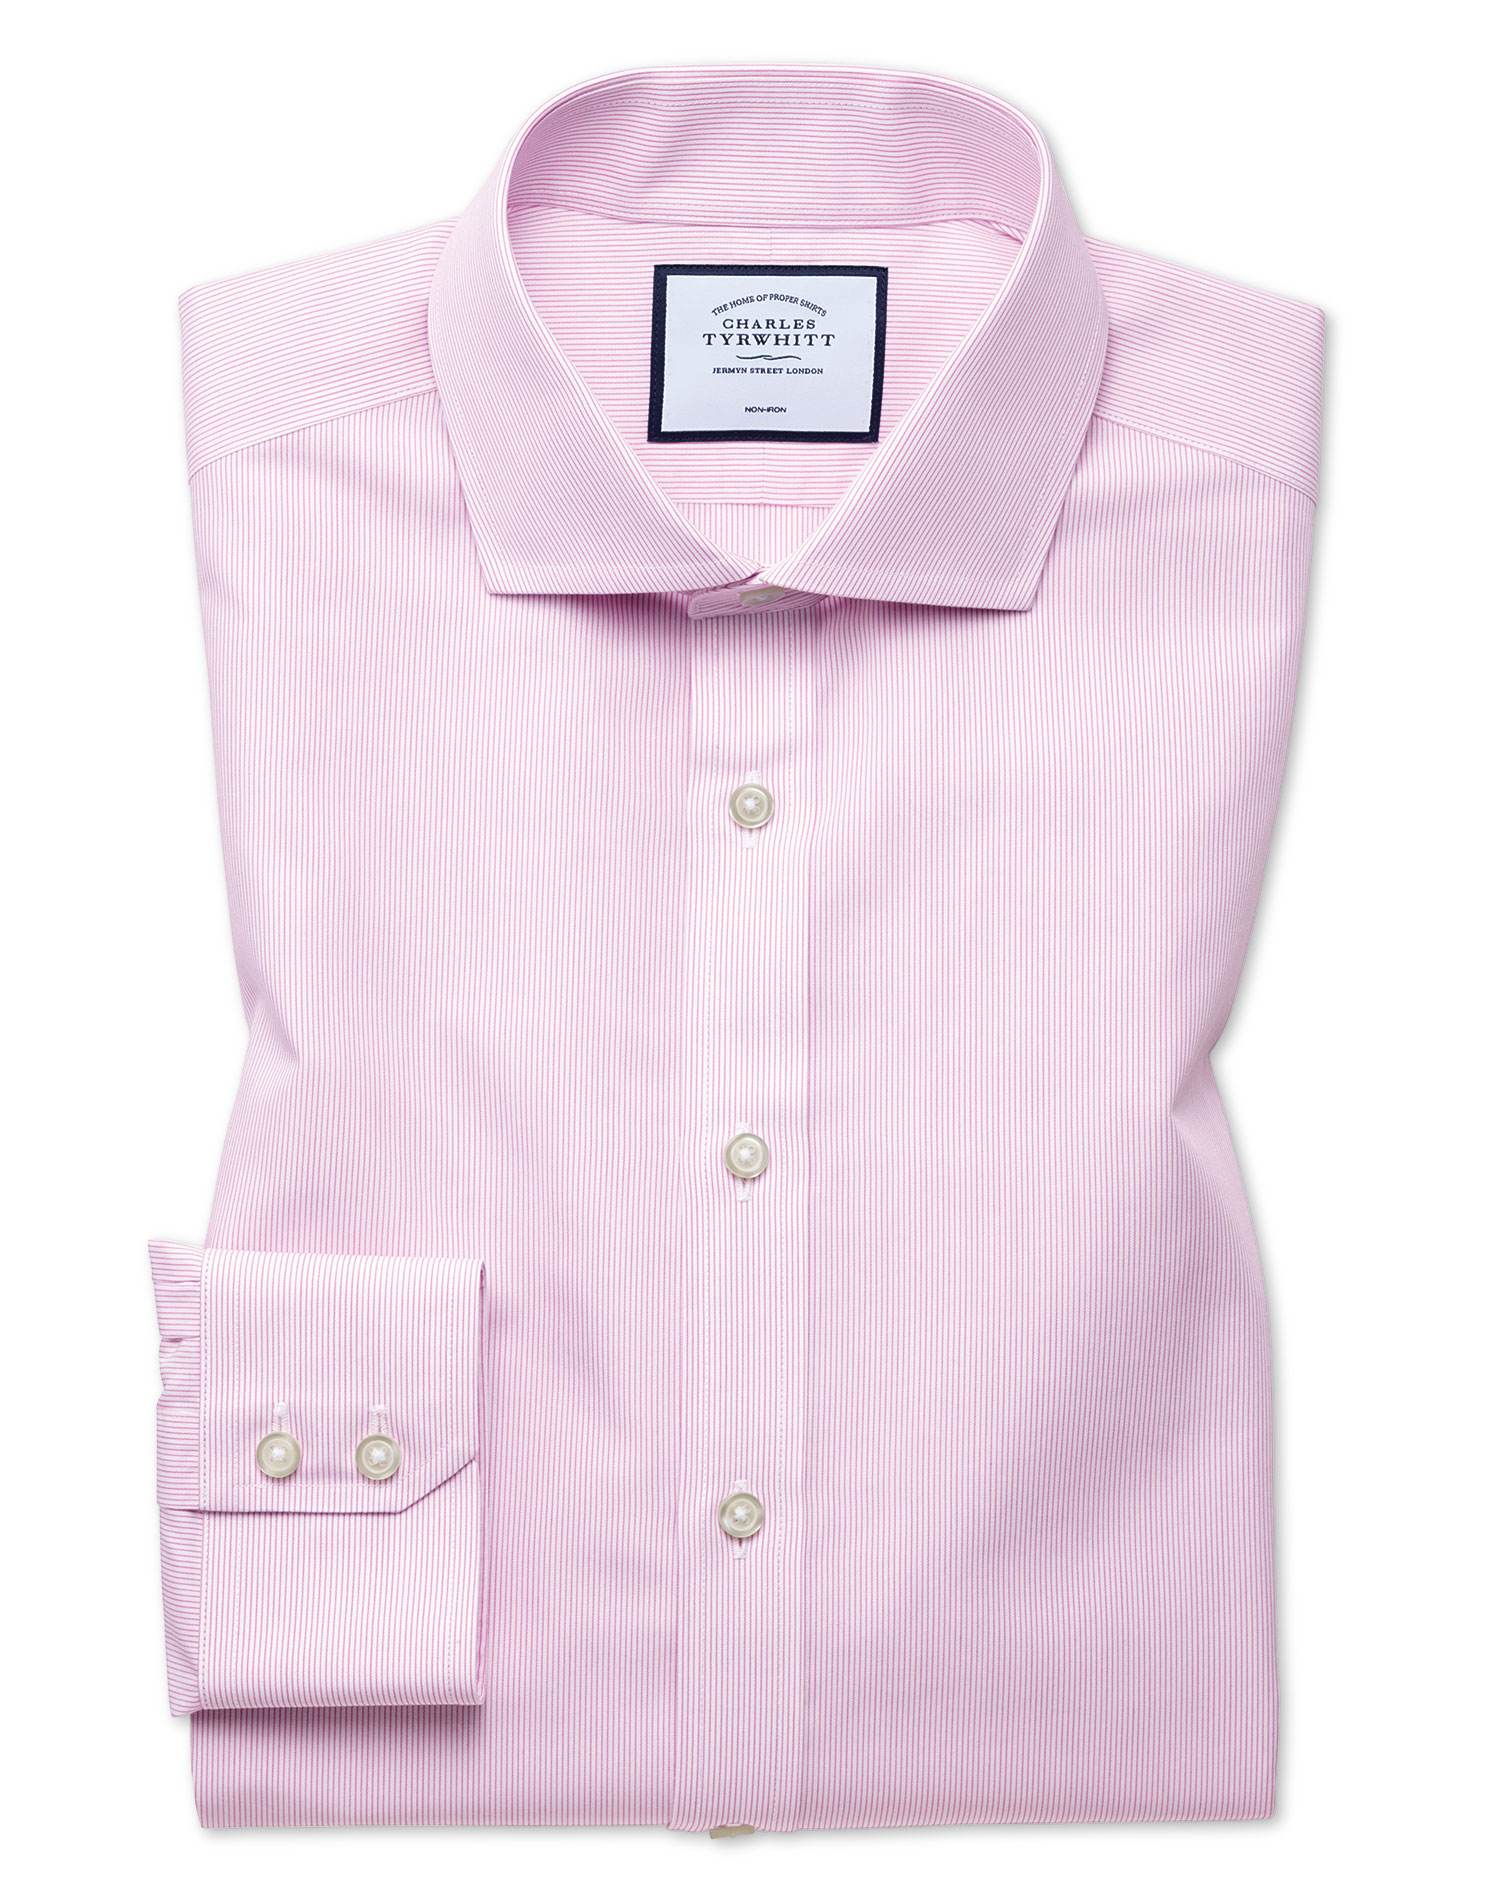 Extra Slim Fit Non-Iron Natural Cool Poplin Pink Cotton Formal Shirt Single Cuff Size 17/35 by Charl